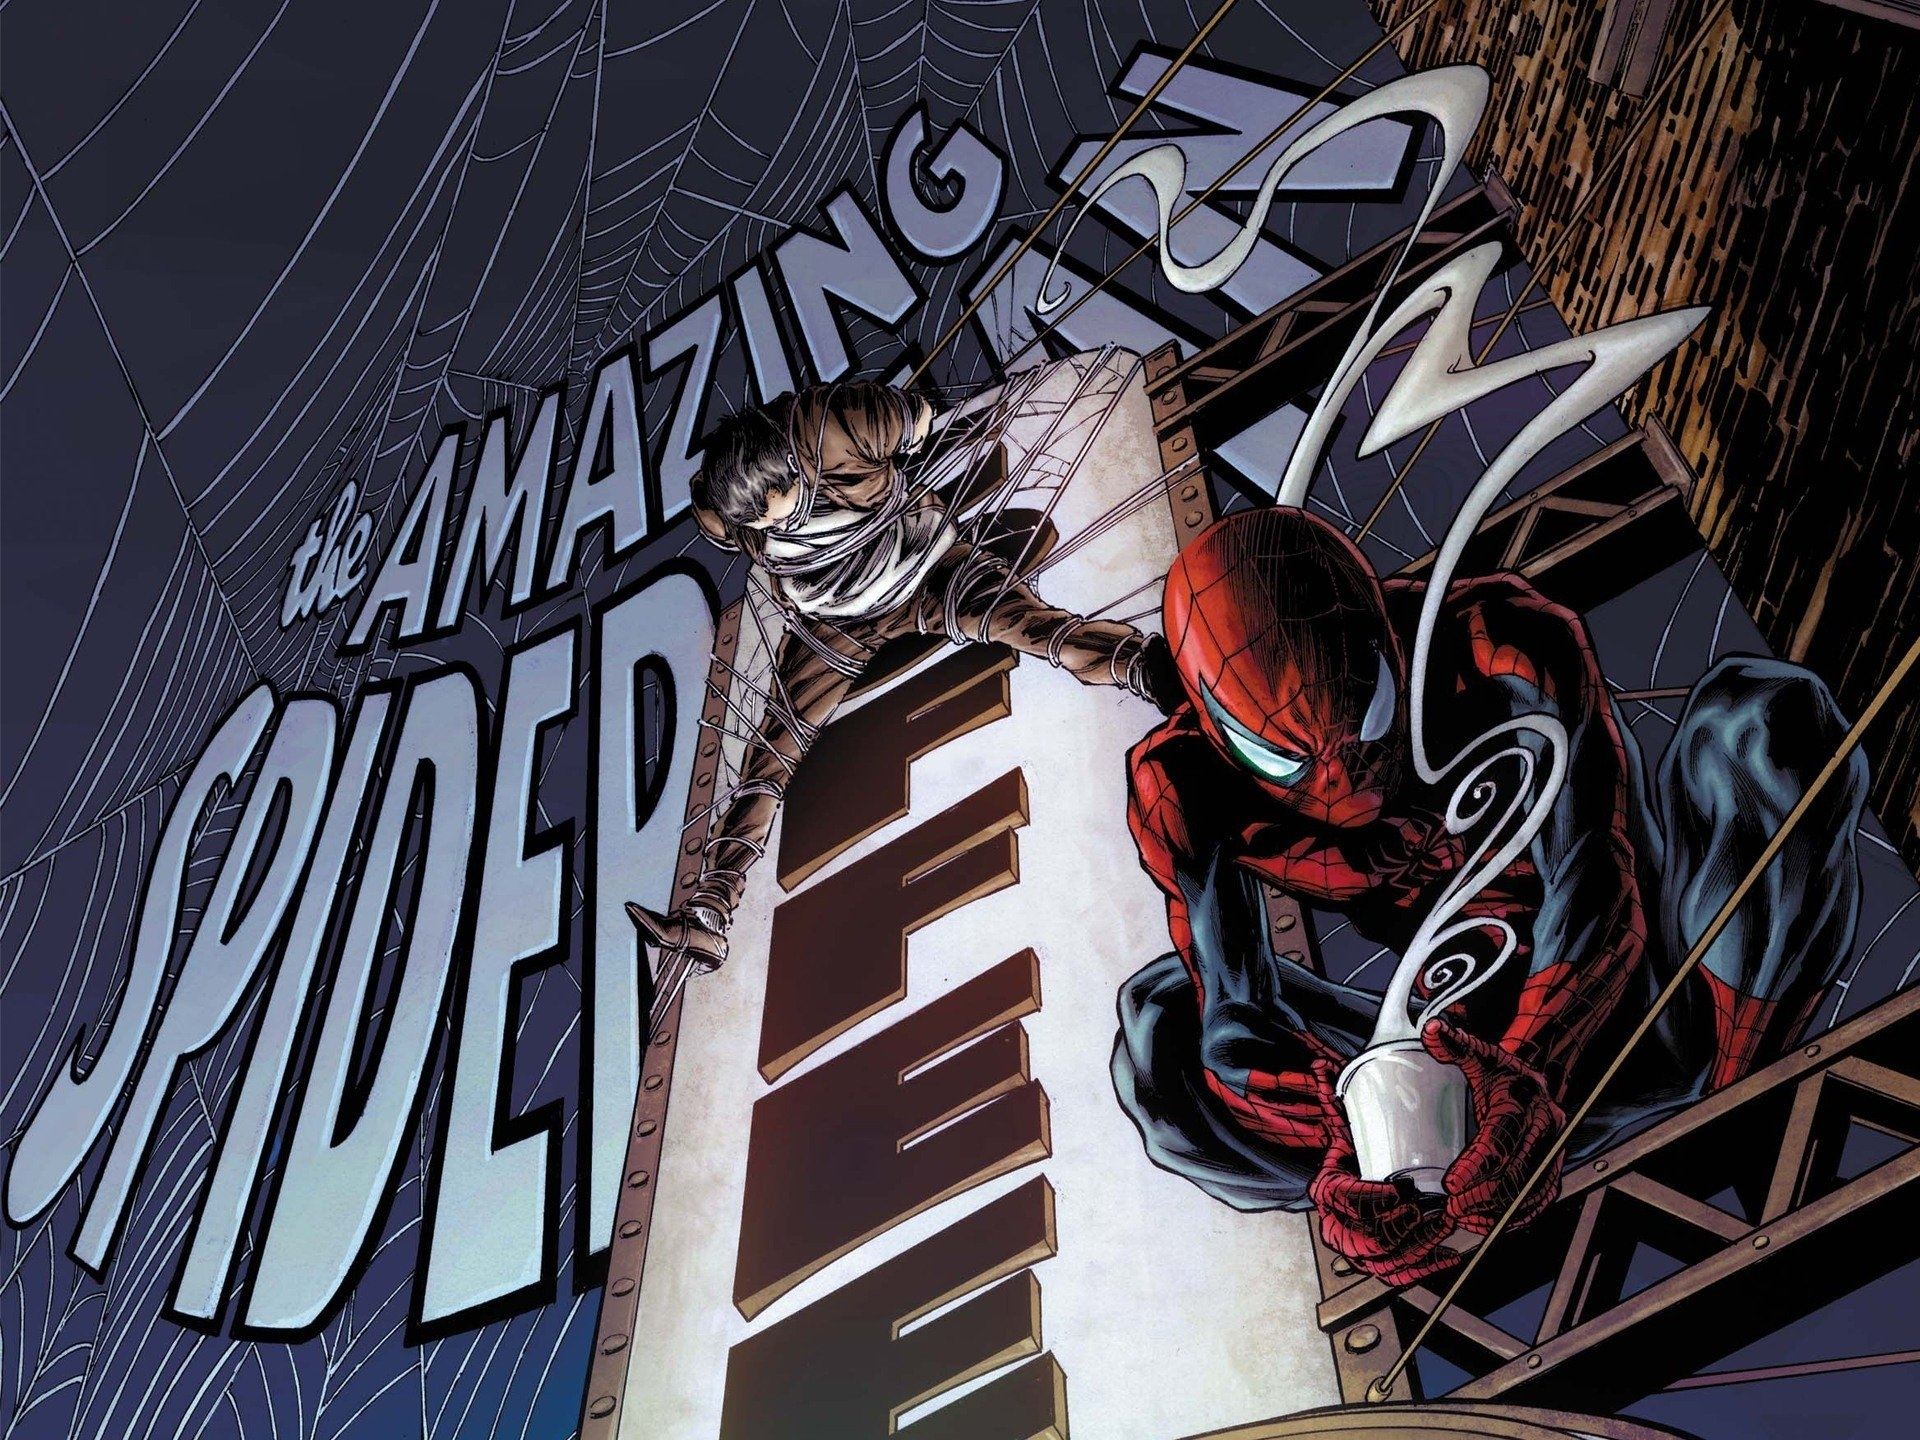 55 the amazing spider-man hd wallpapers | background images